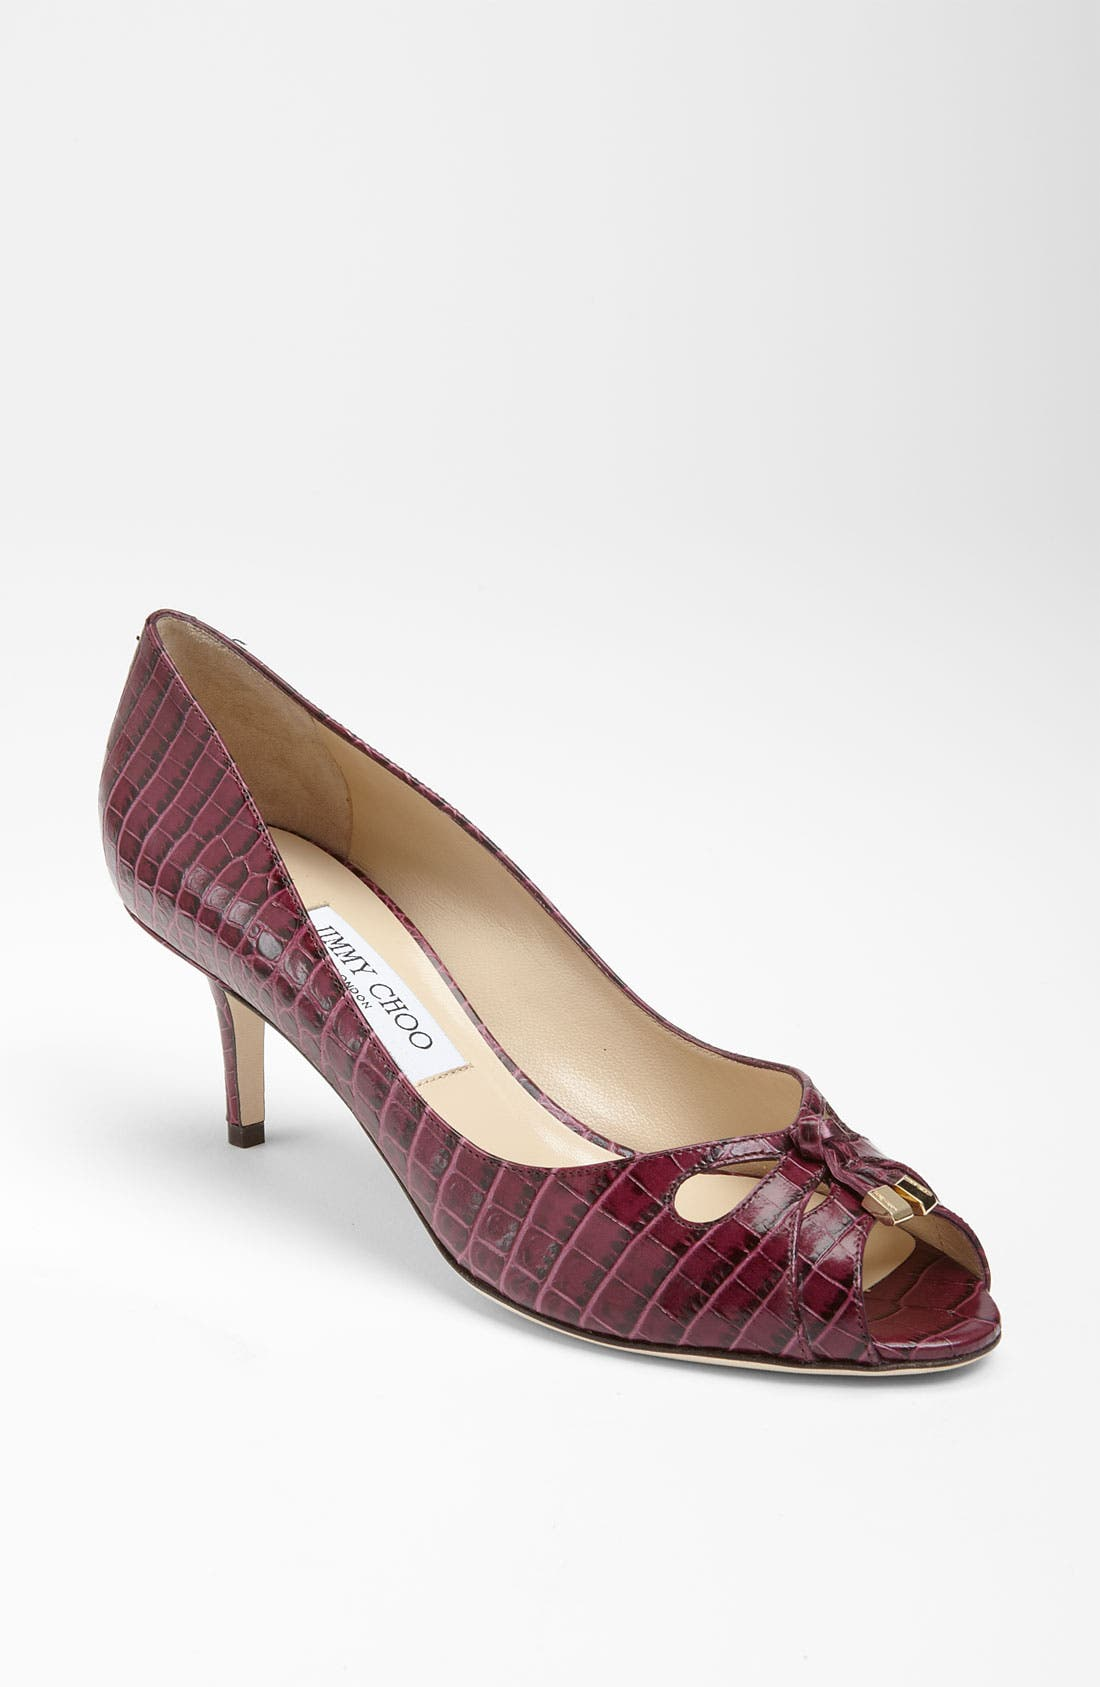 Alternate Image 1 Selected - Jimmy Choo 'Valika' Pump